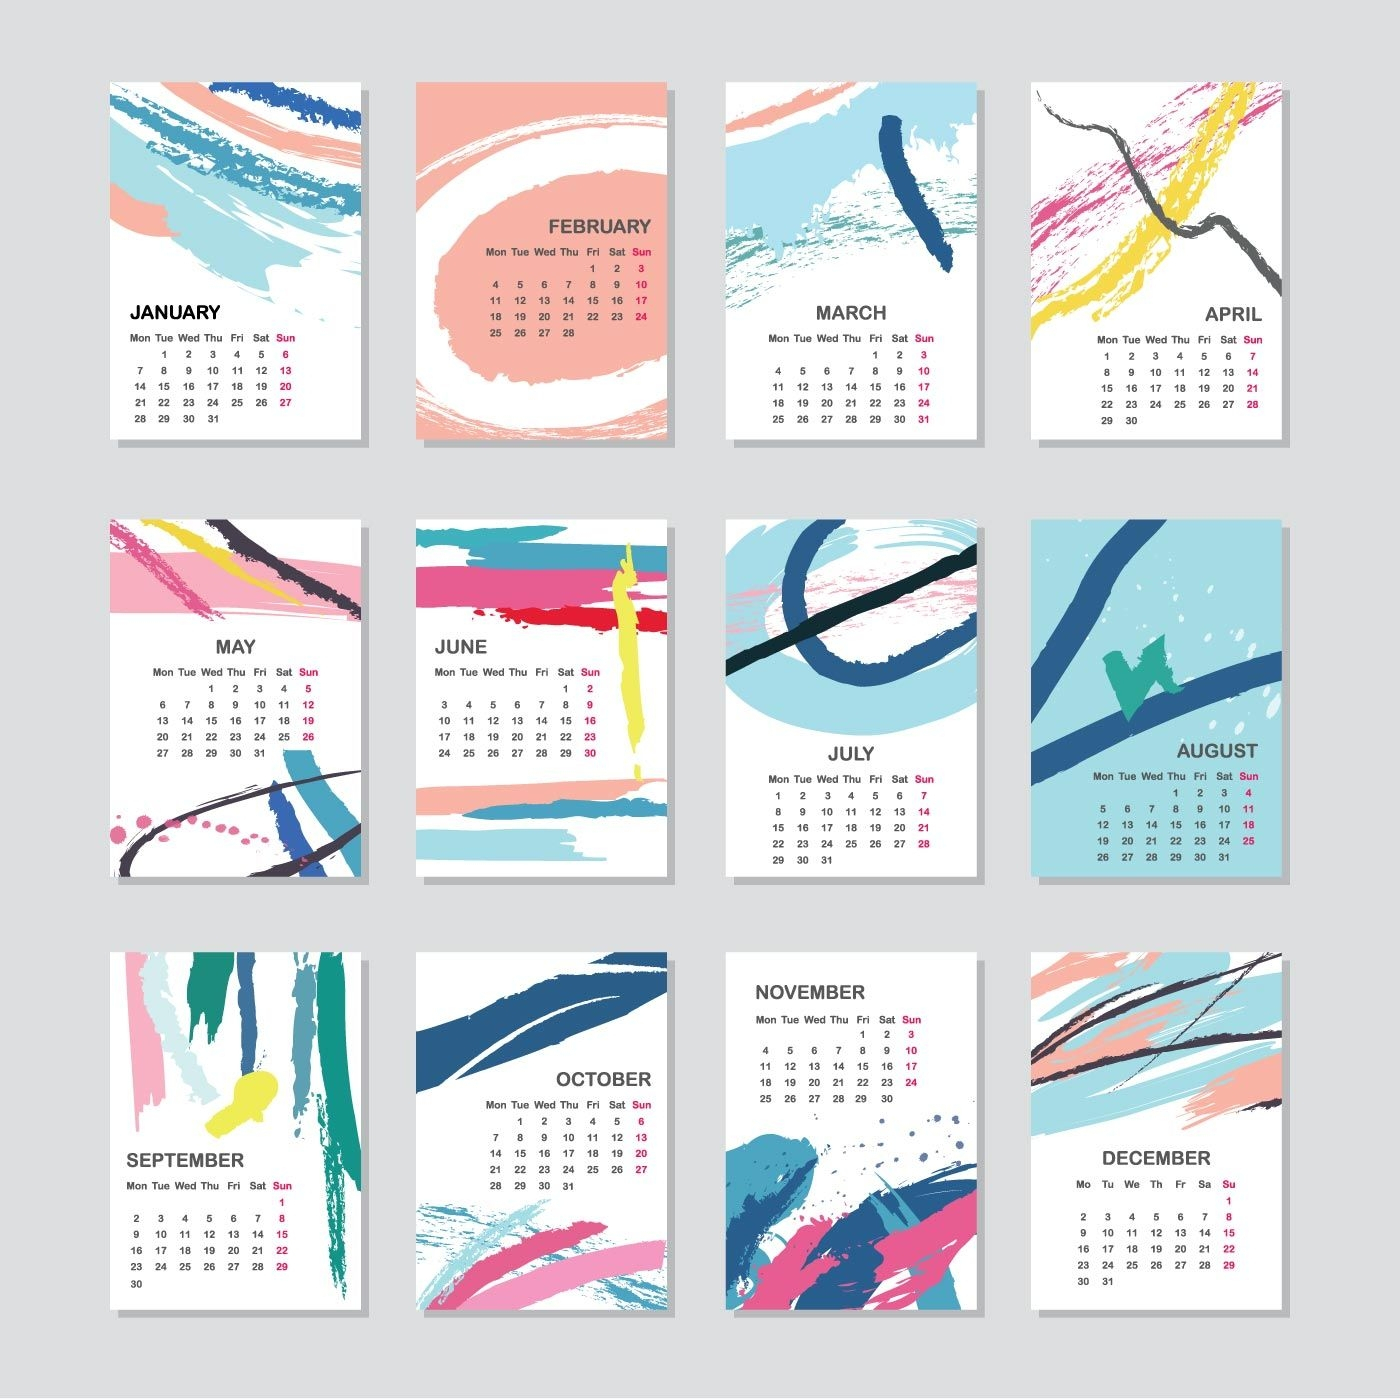 Printable Free August 2019 Calendar Template With Clown | Calendar pertaining to Printable Free August Calendar Template With Clown